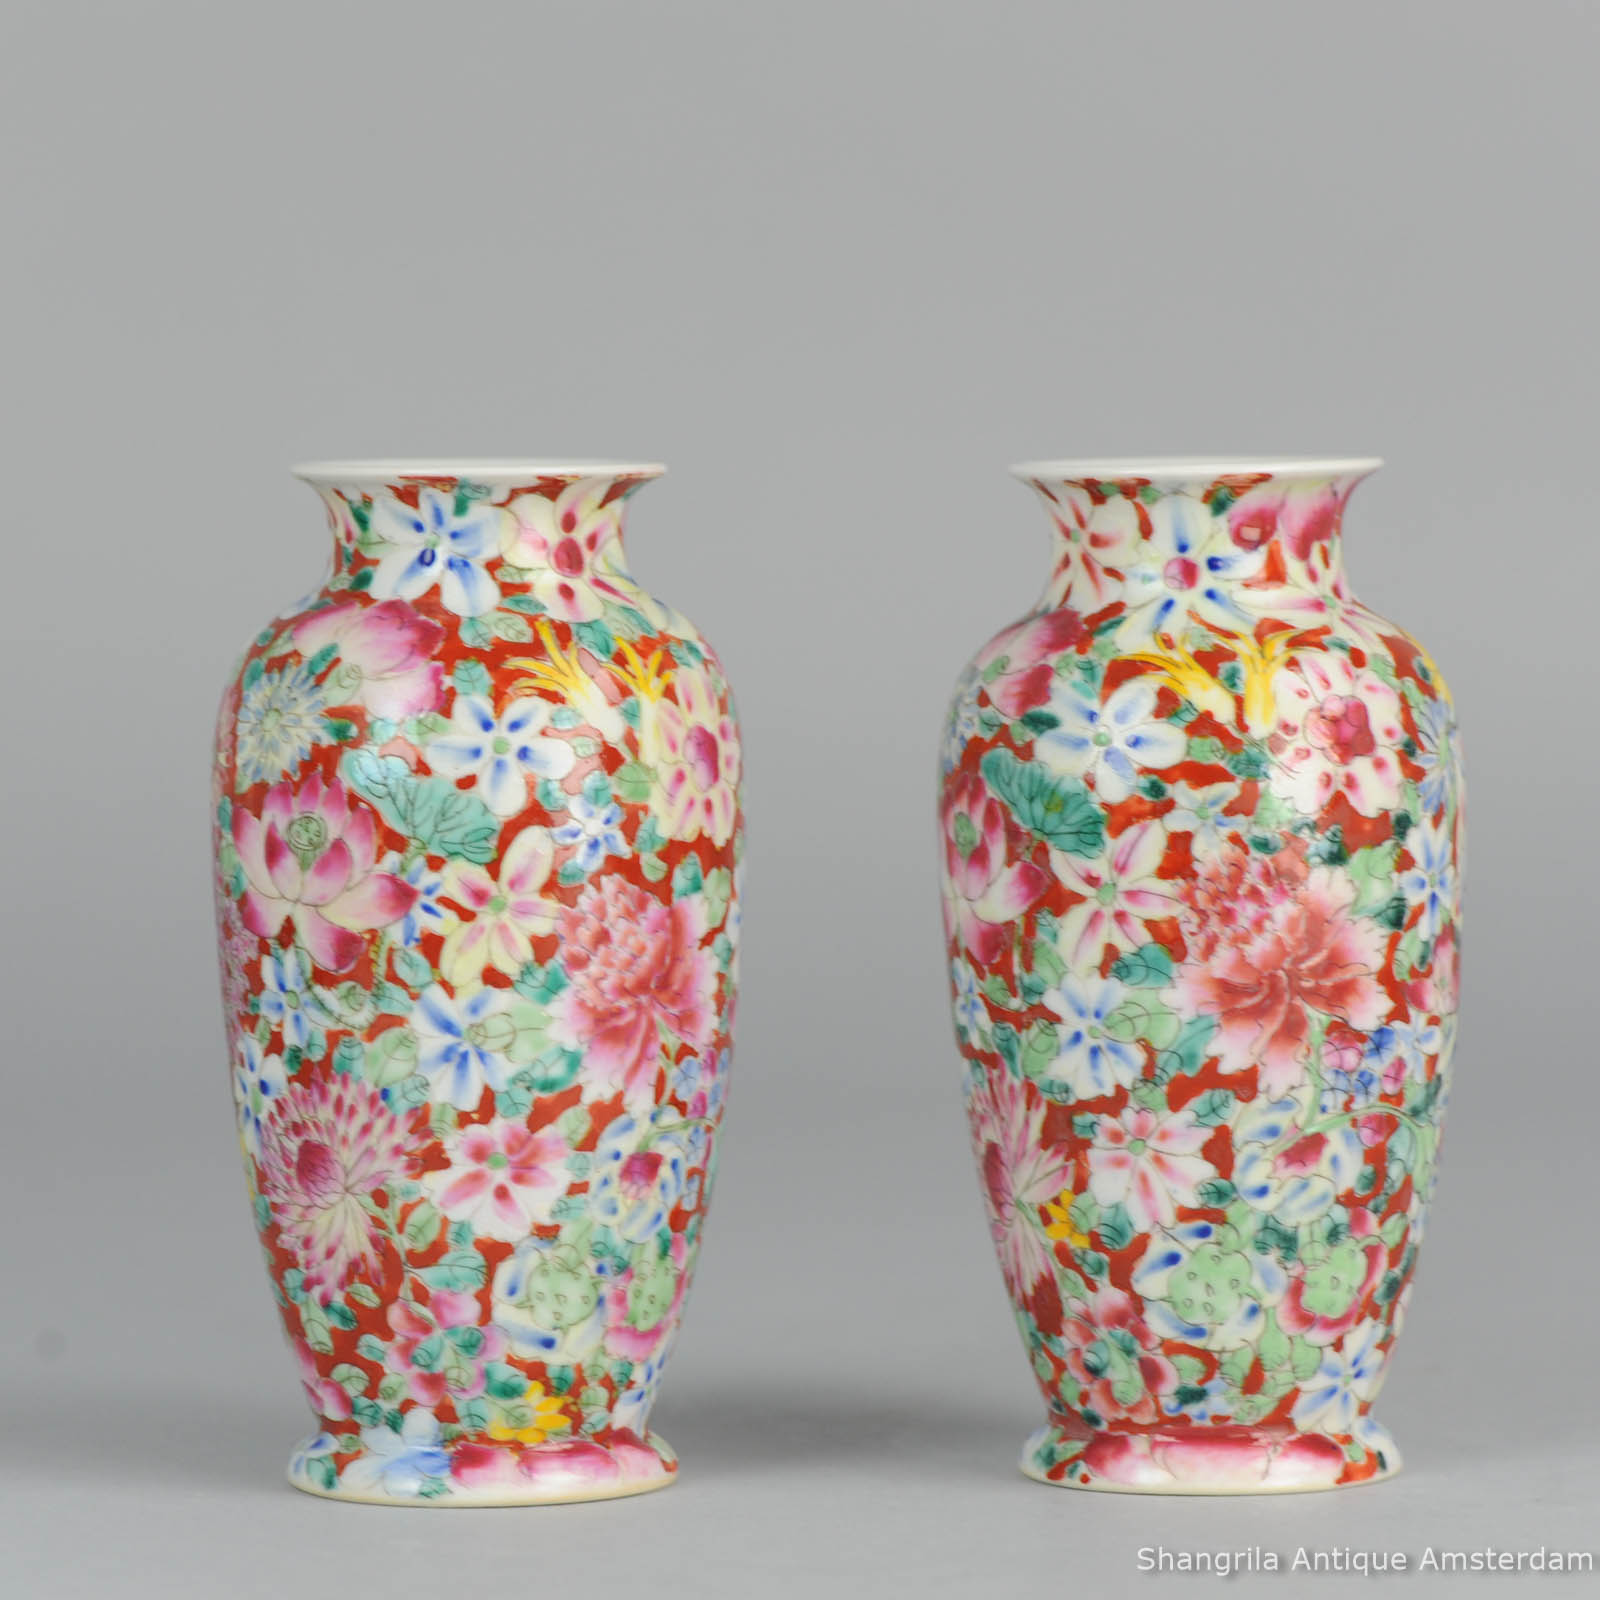 Antique pair of late qing or republic millefleur vases rare red type guangxu marked chinese porcelain vase 2g set 1920c chinese porcelain vases millefleur guangxu marked reviewsmspy